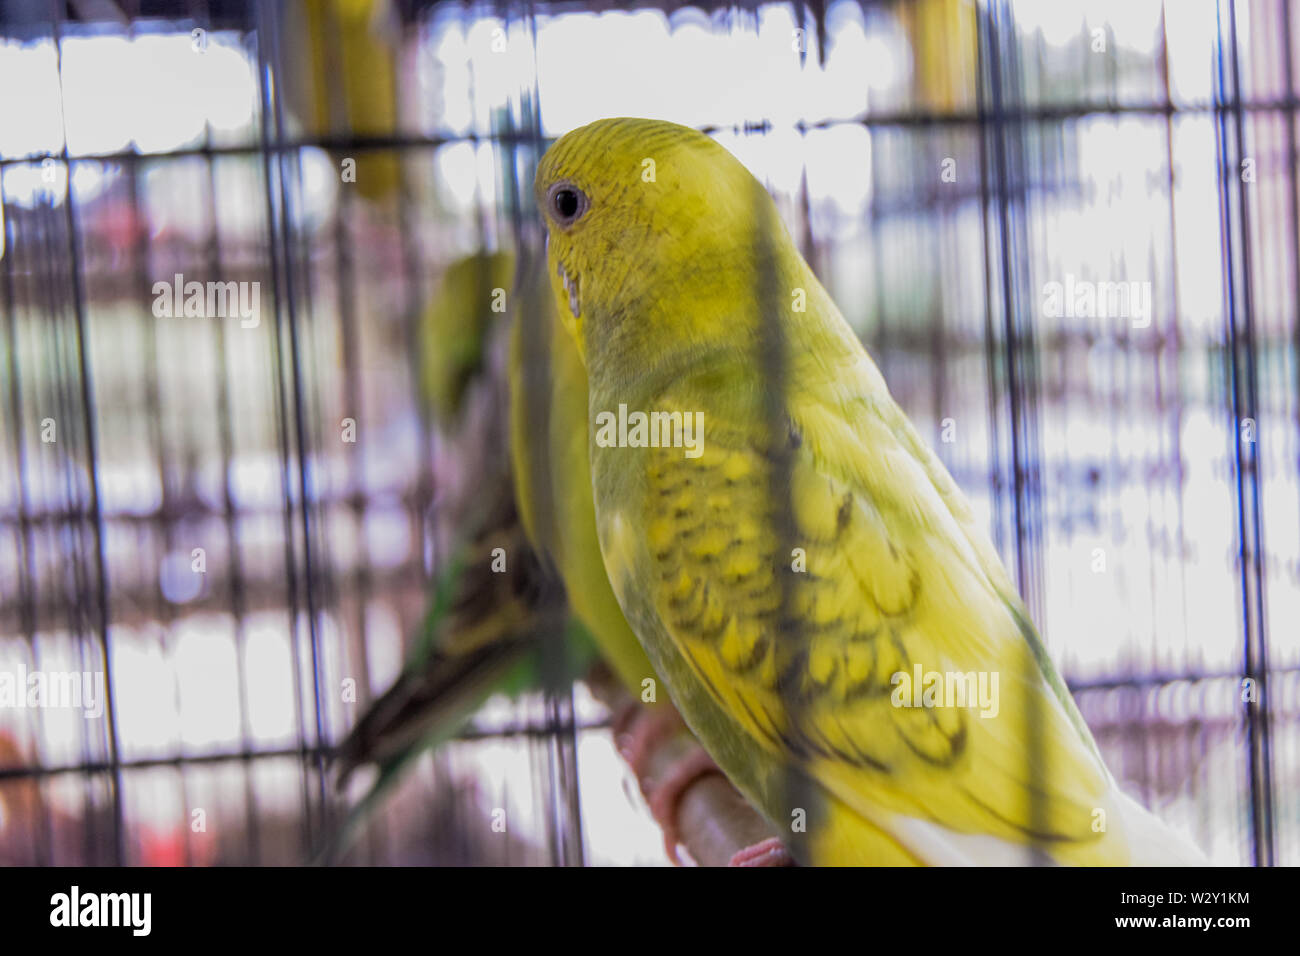 Green Parrot In Cage Stock Photos & Green Parrot In Cage